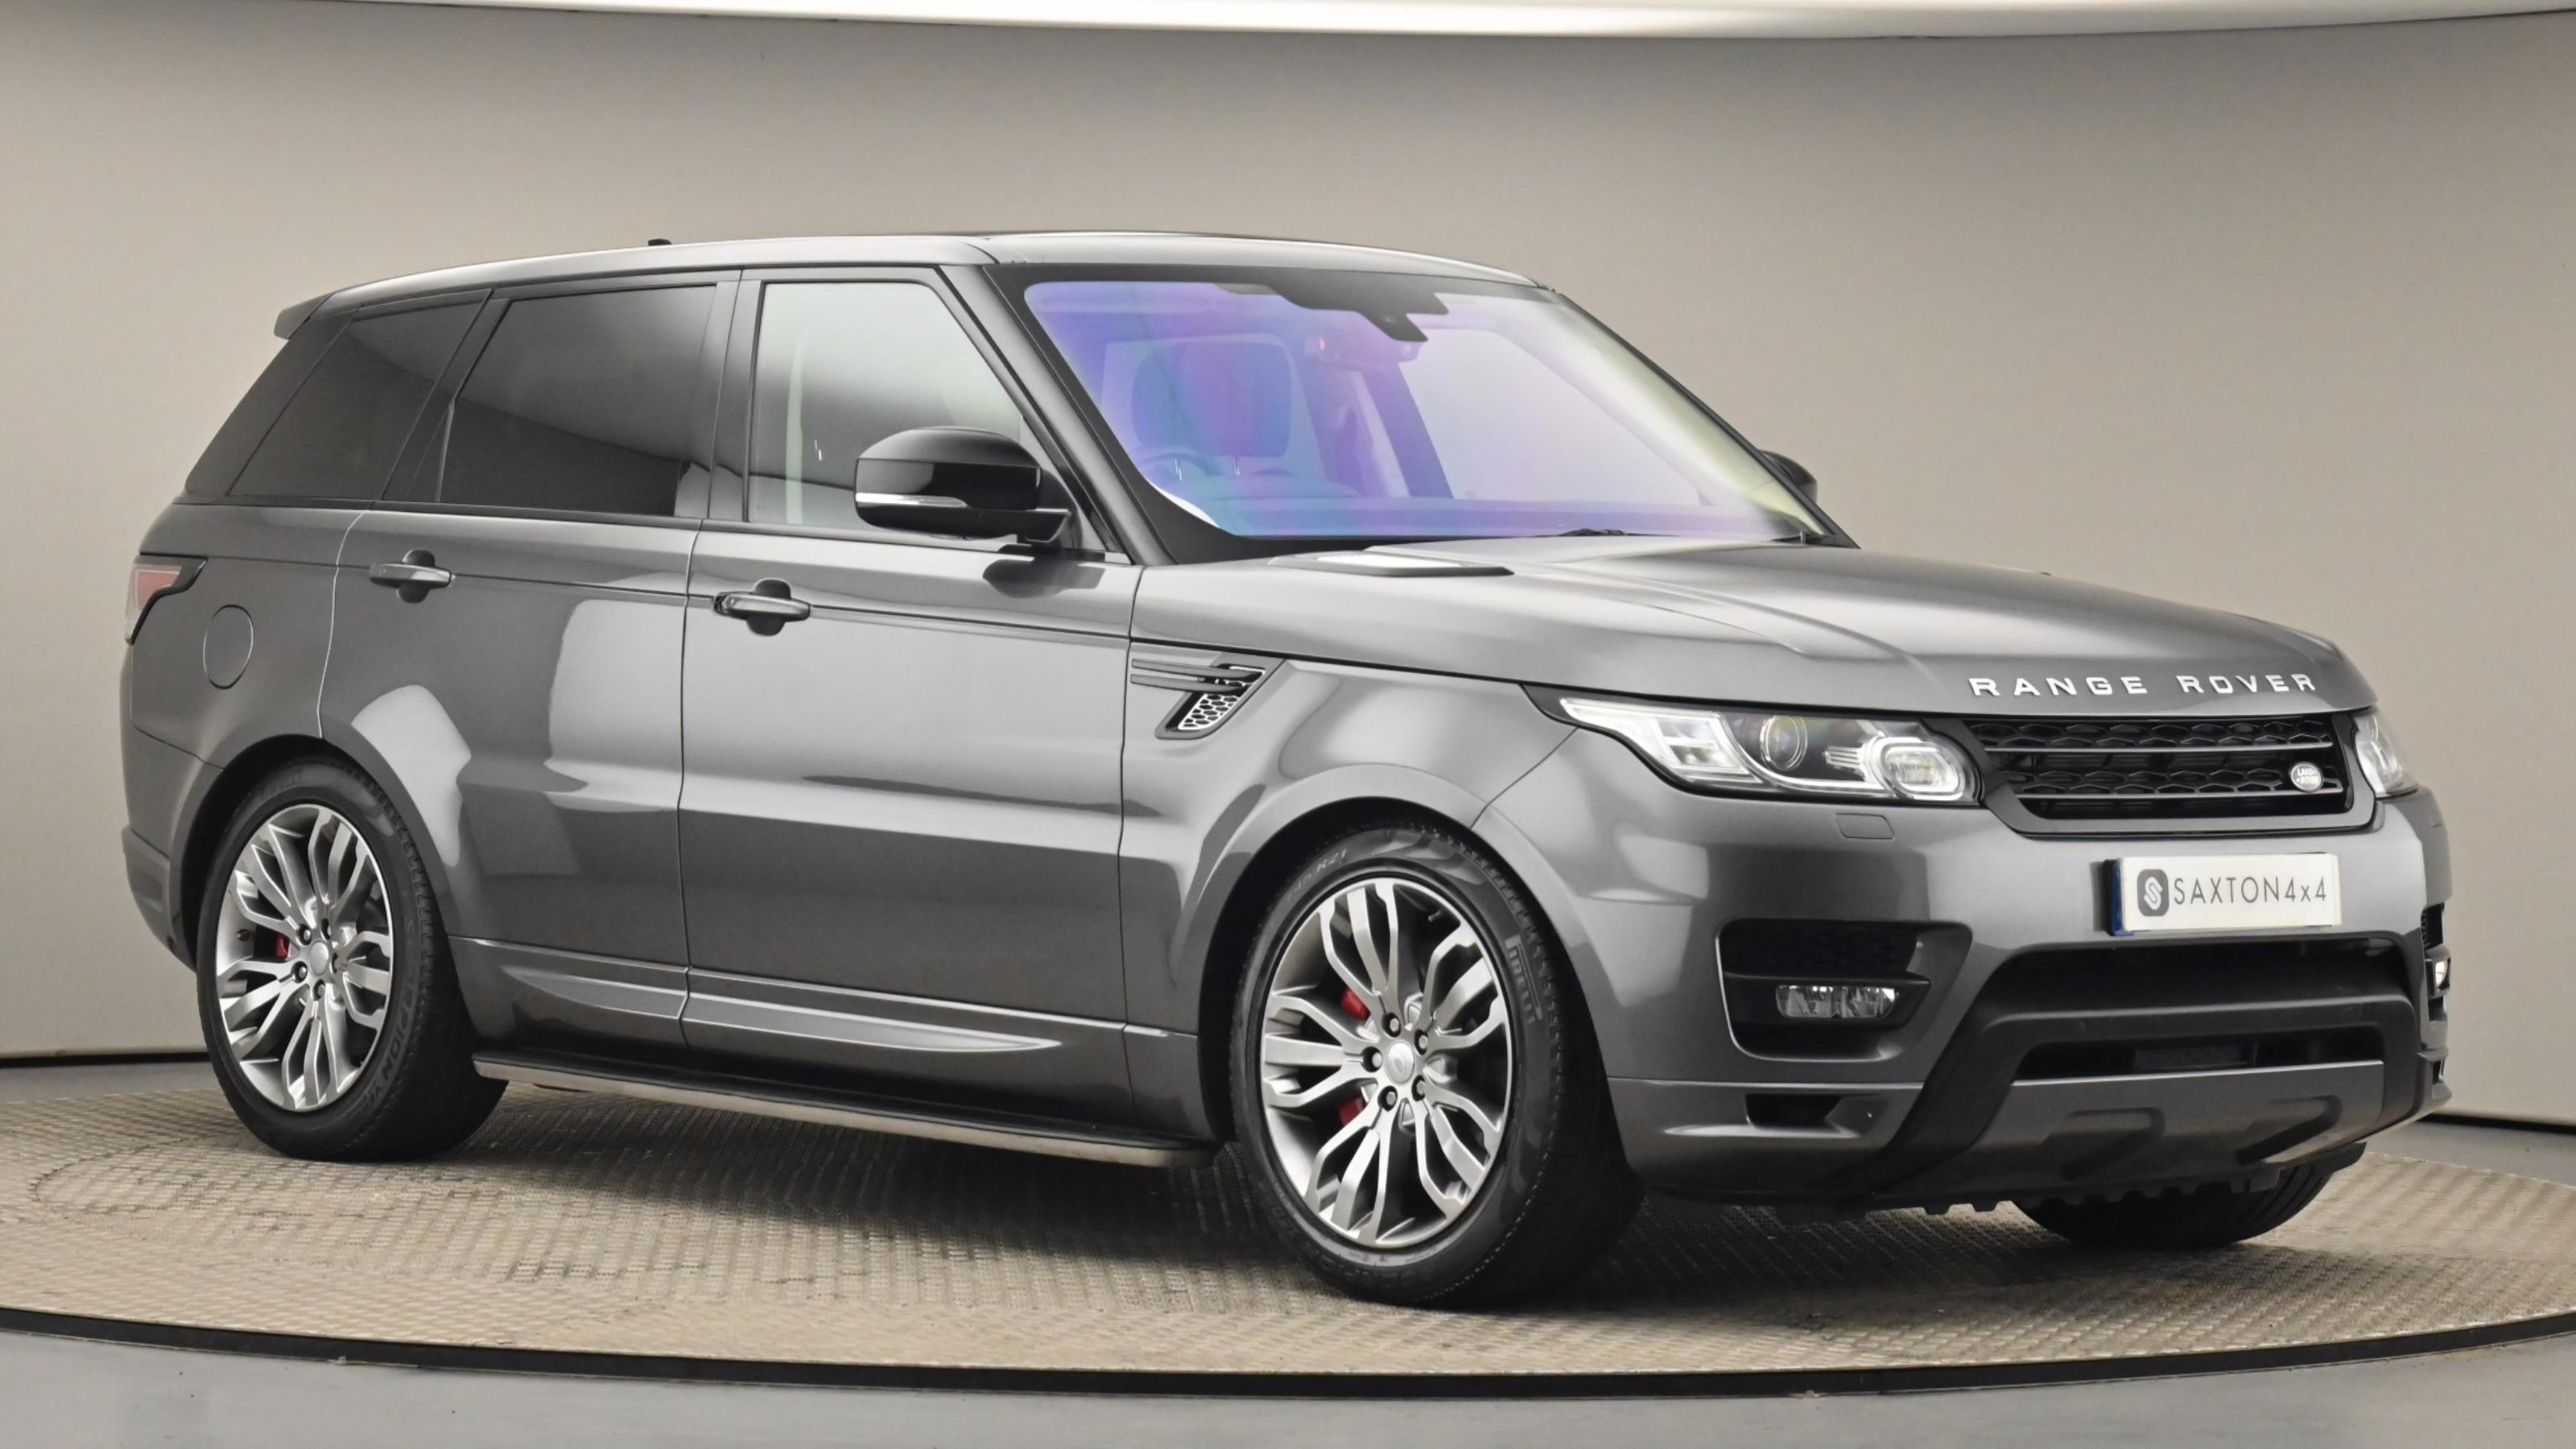 Used 2016 Land Rover RANGE ROVER SPORT 3.0 SDV6 [306] Autobiography Dynamic 5dr Auto GREY at Saxton4x4